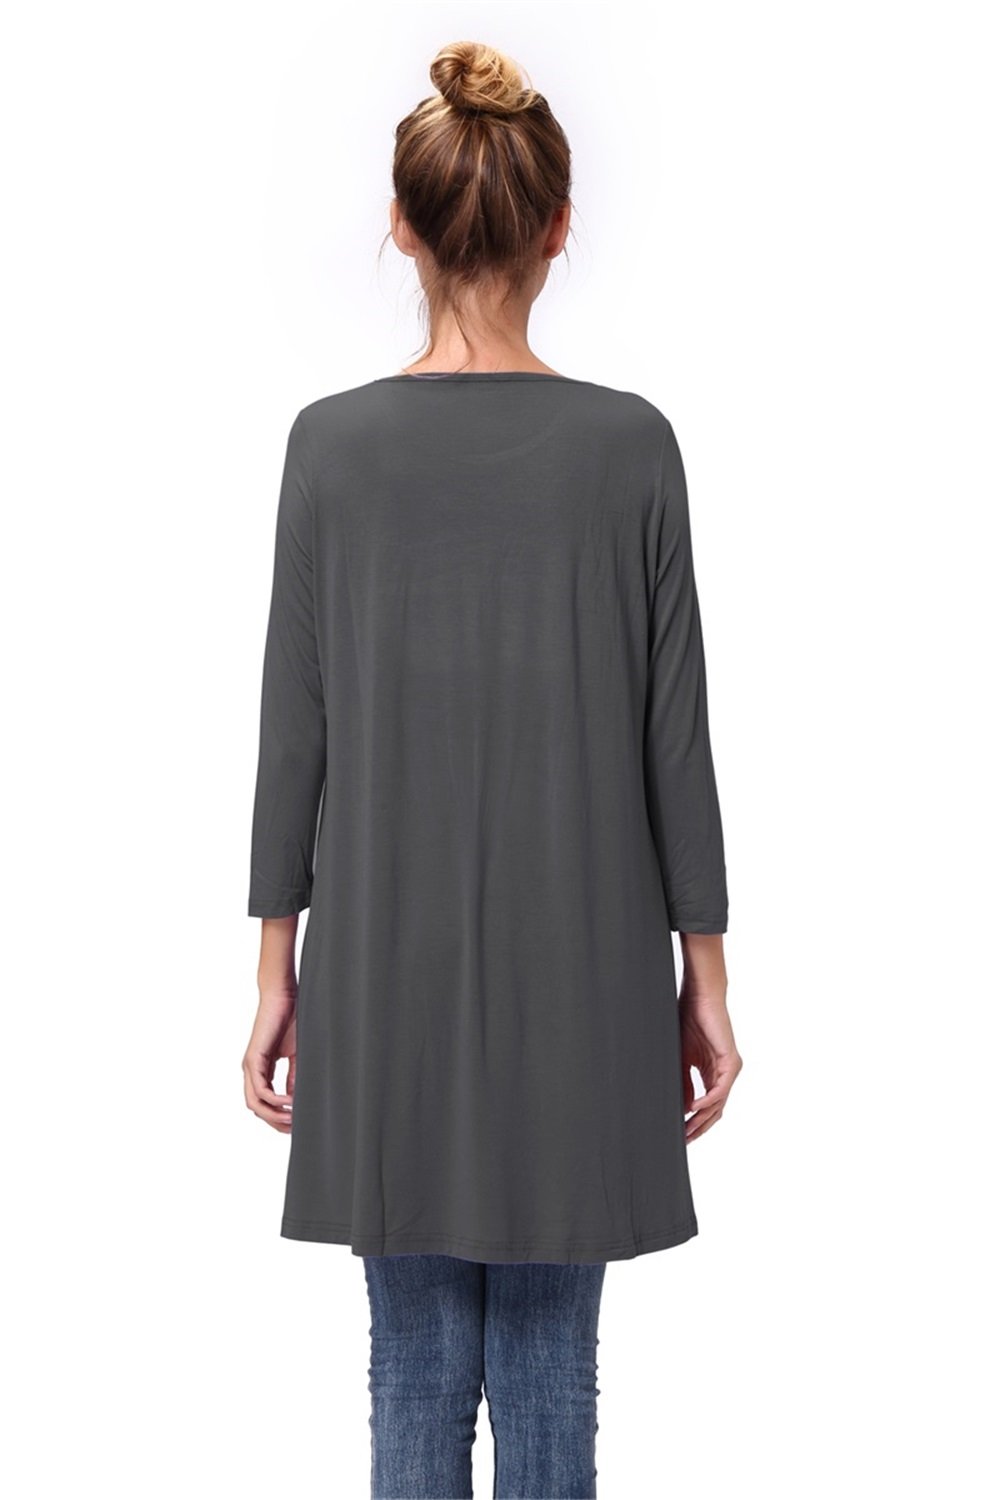 Women-Casual-Round-Neck-3-4-Long-Sleeve-Trapeze-Tunic-Top-Lady-Loose-Fit-Dress thumbnail 28